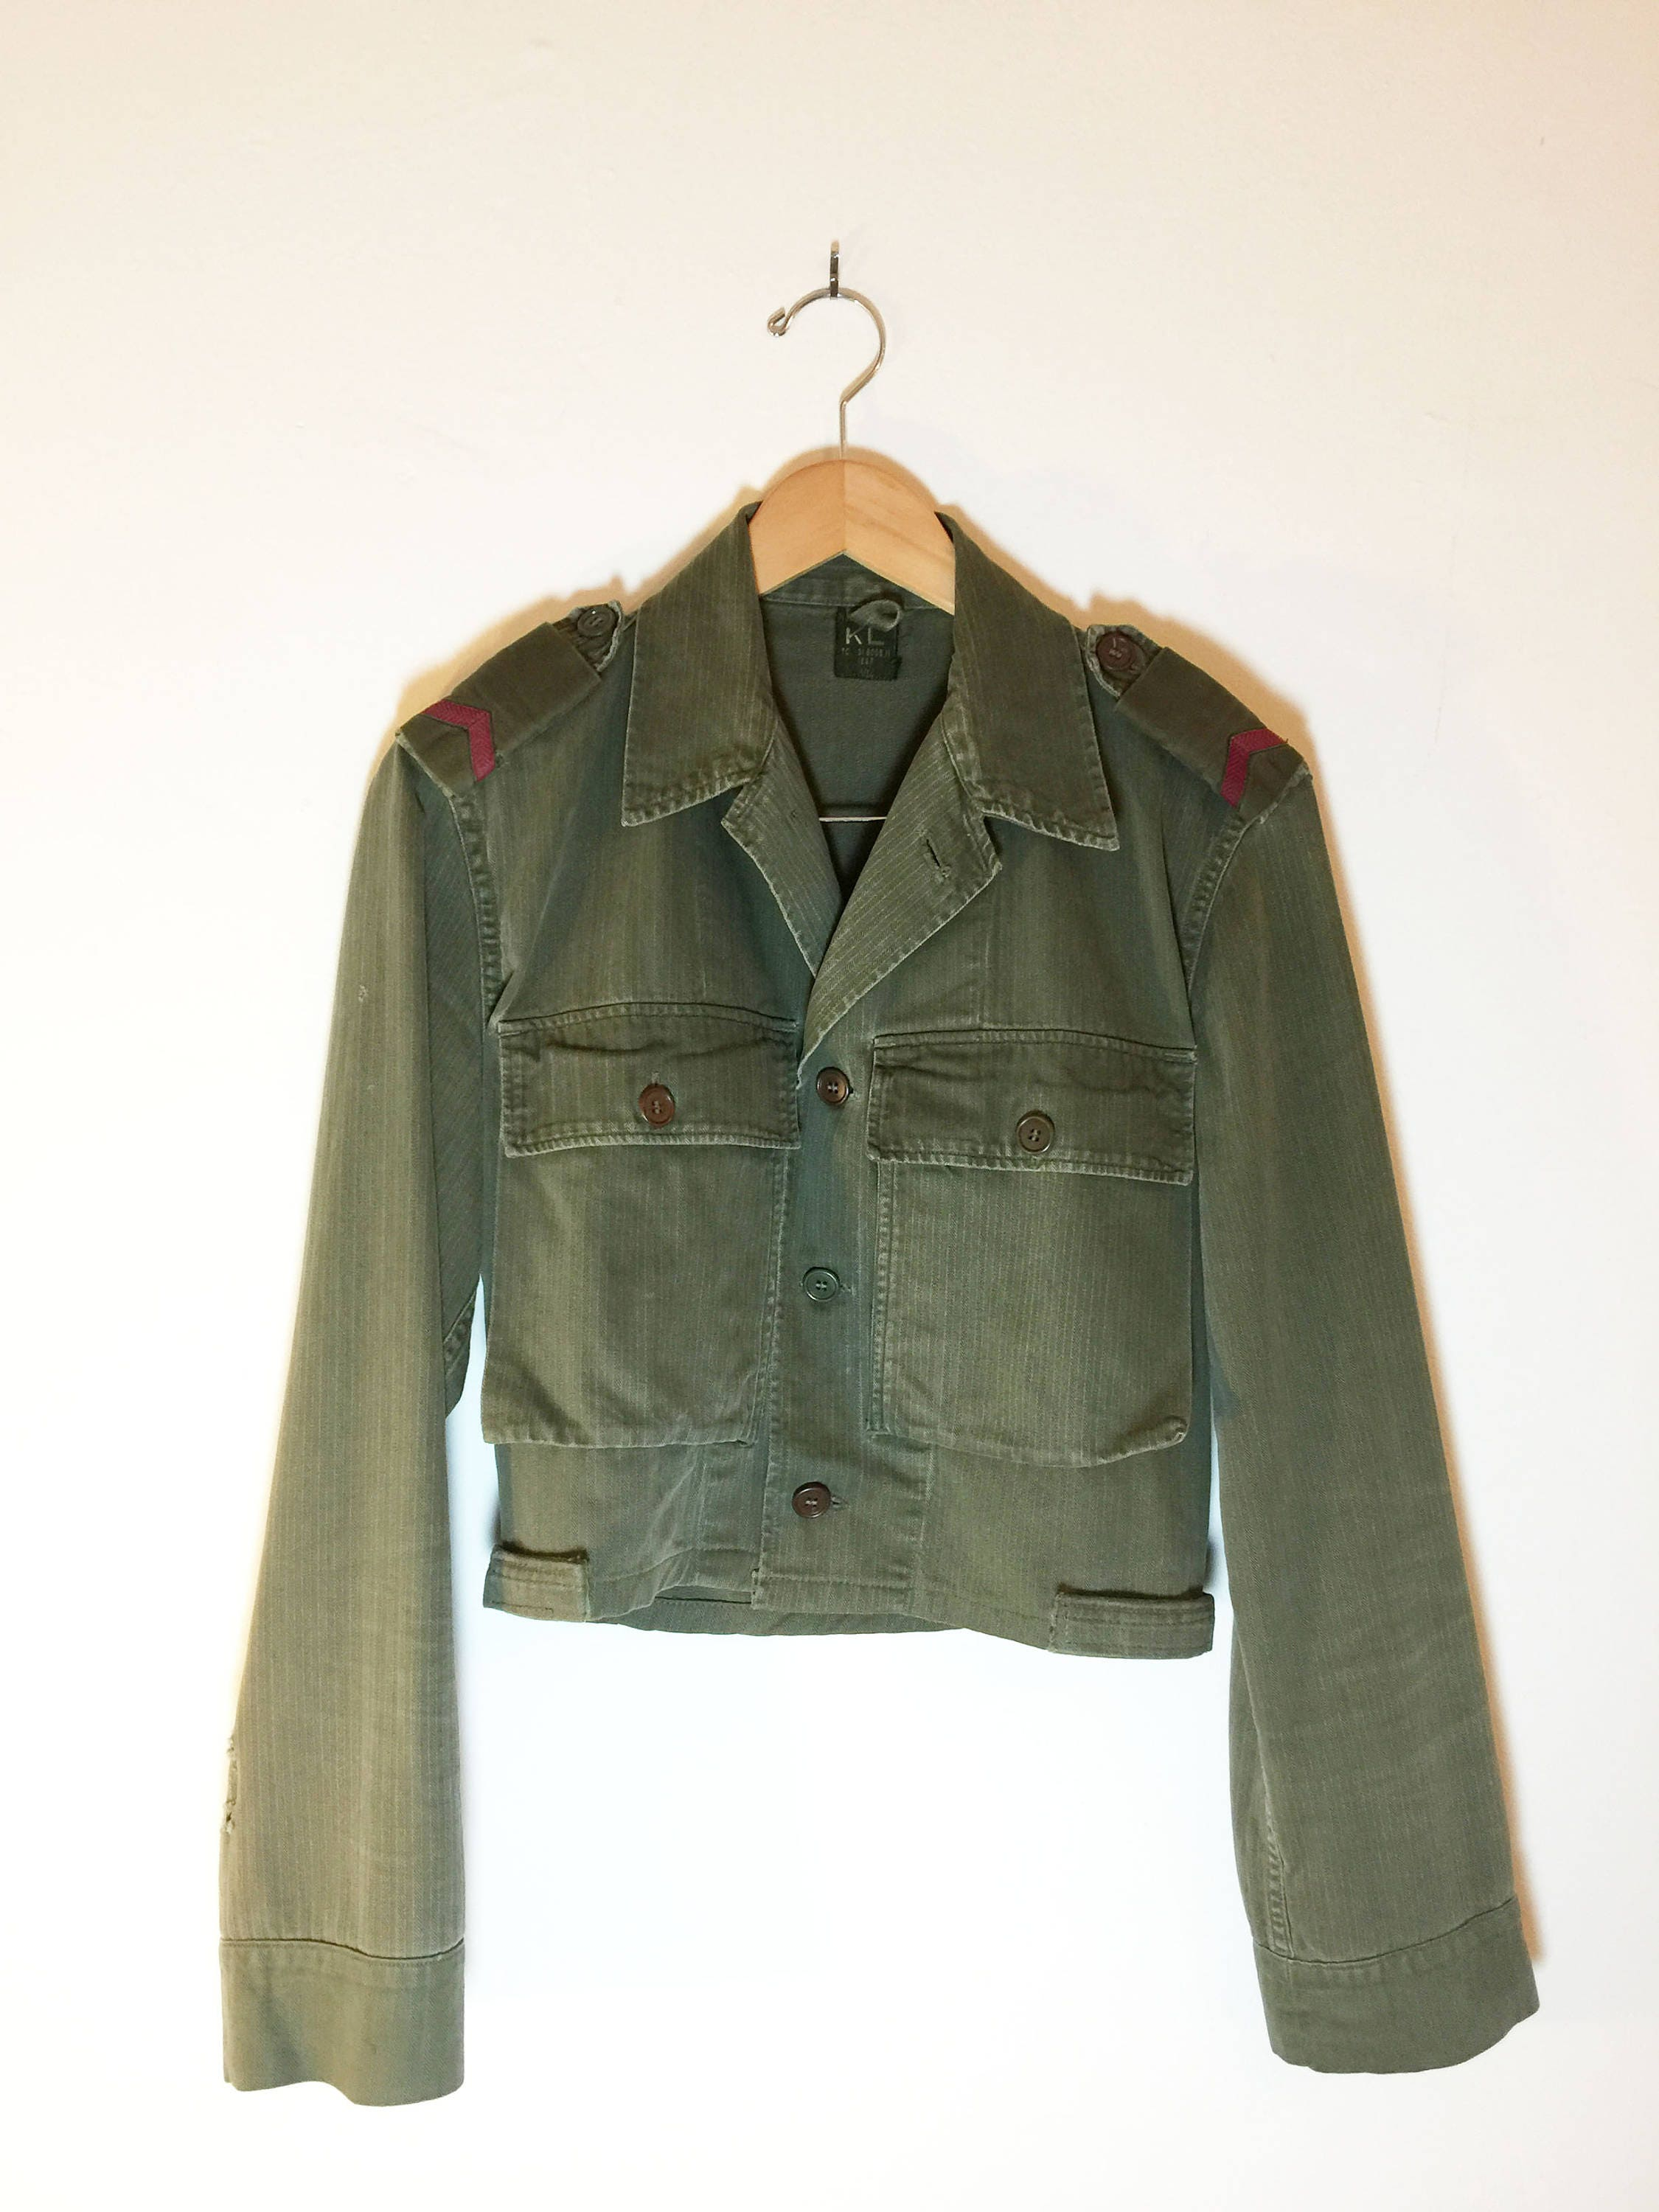 Find great deals on eBay for authentic army jacket. Shop with confidence.